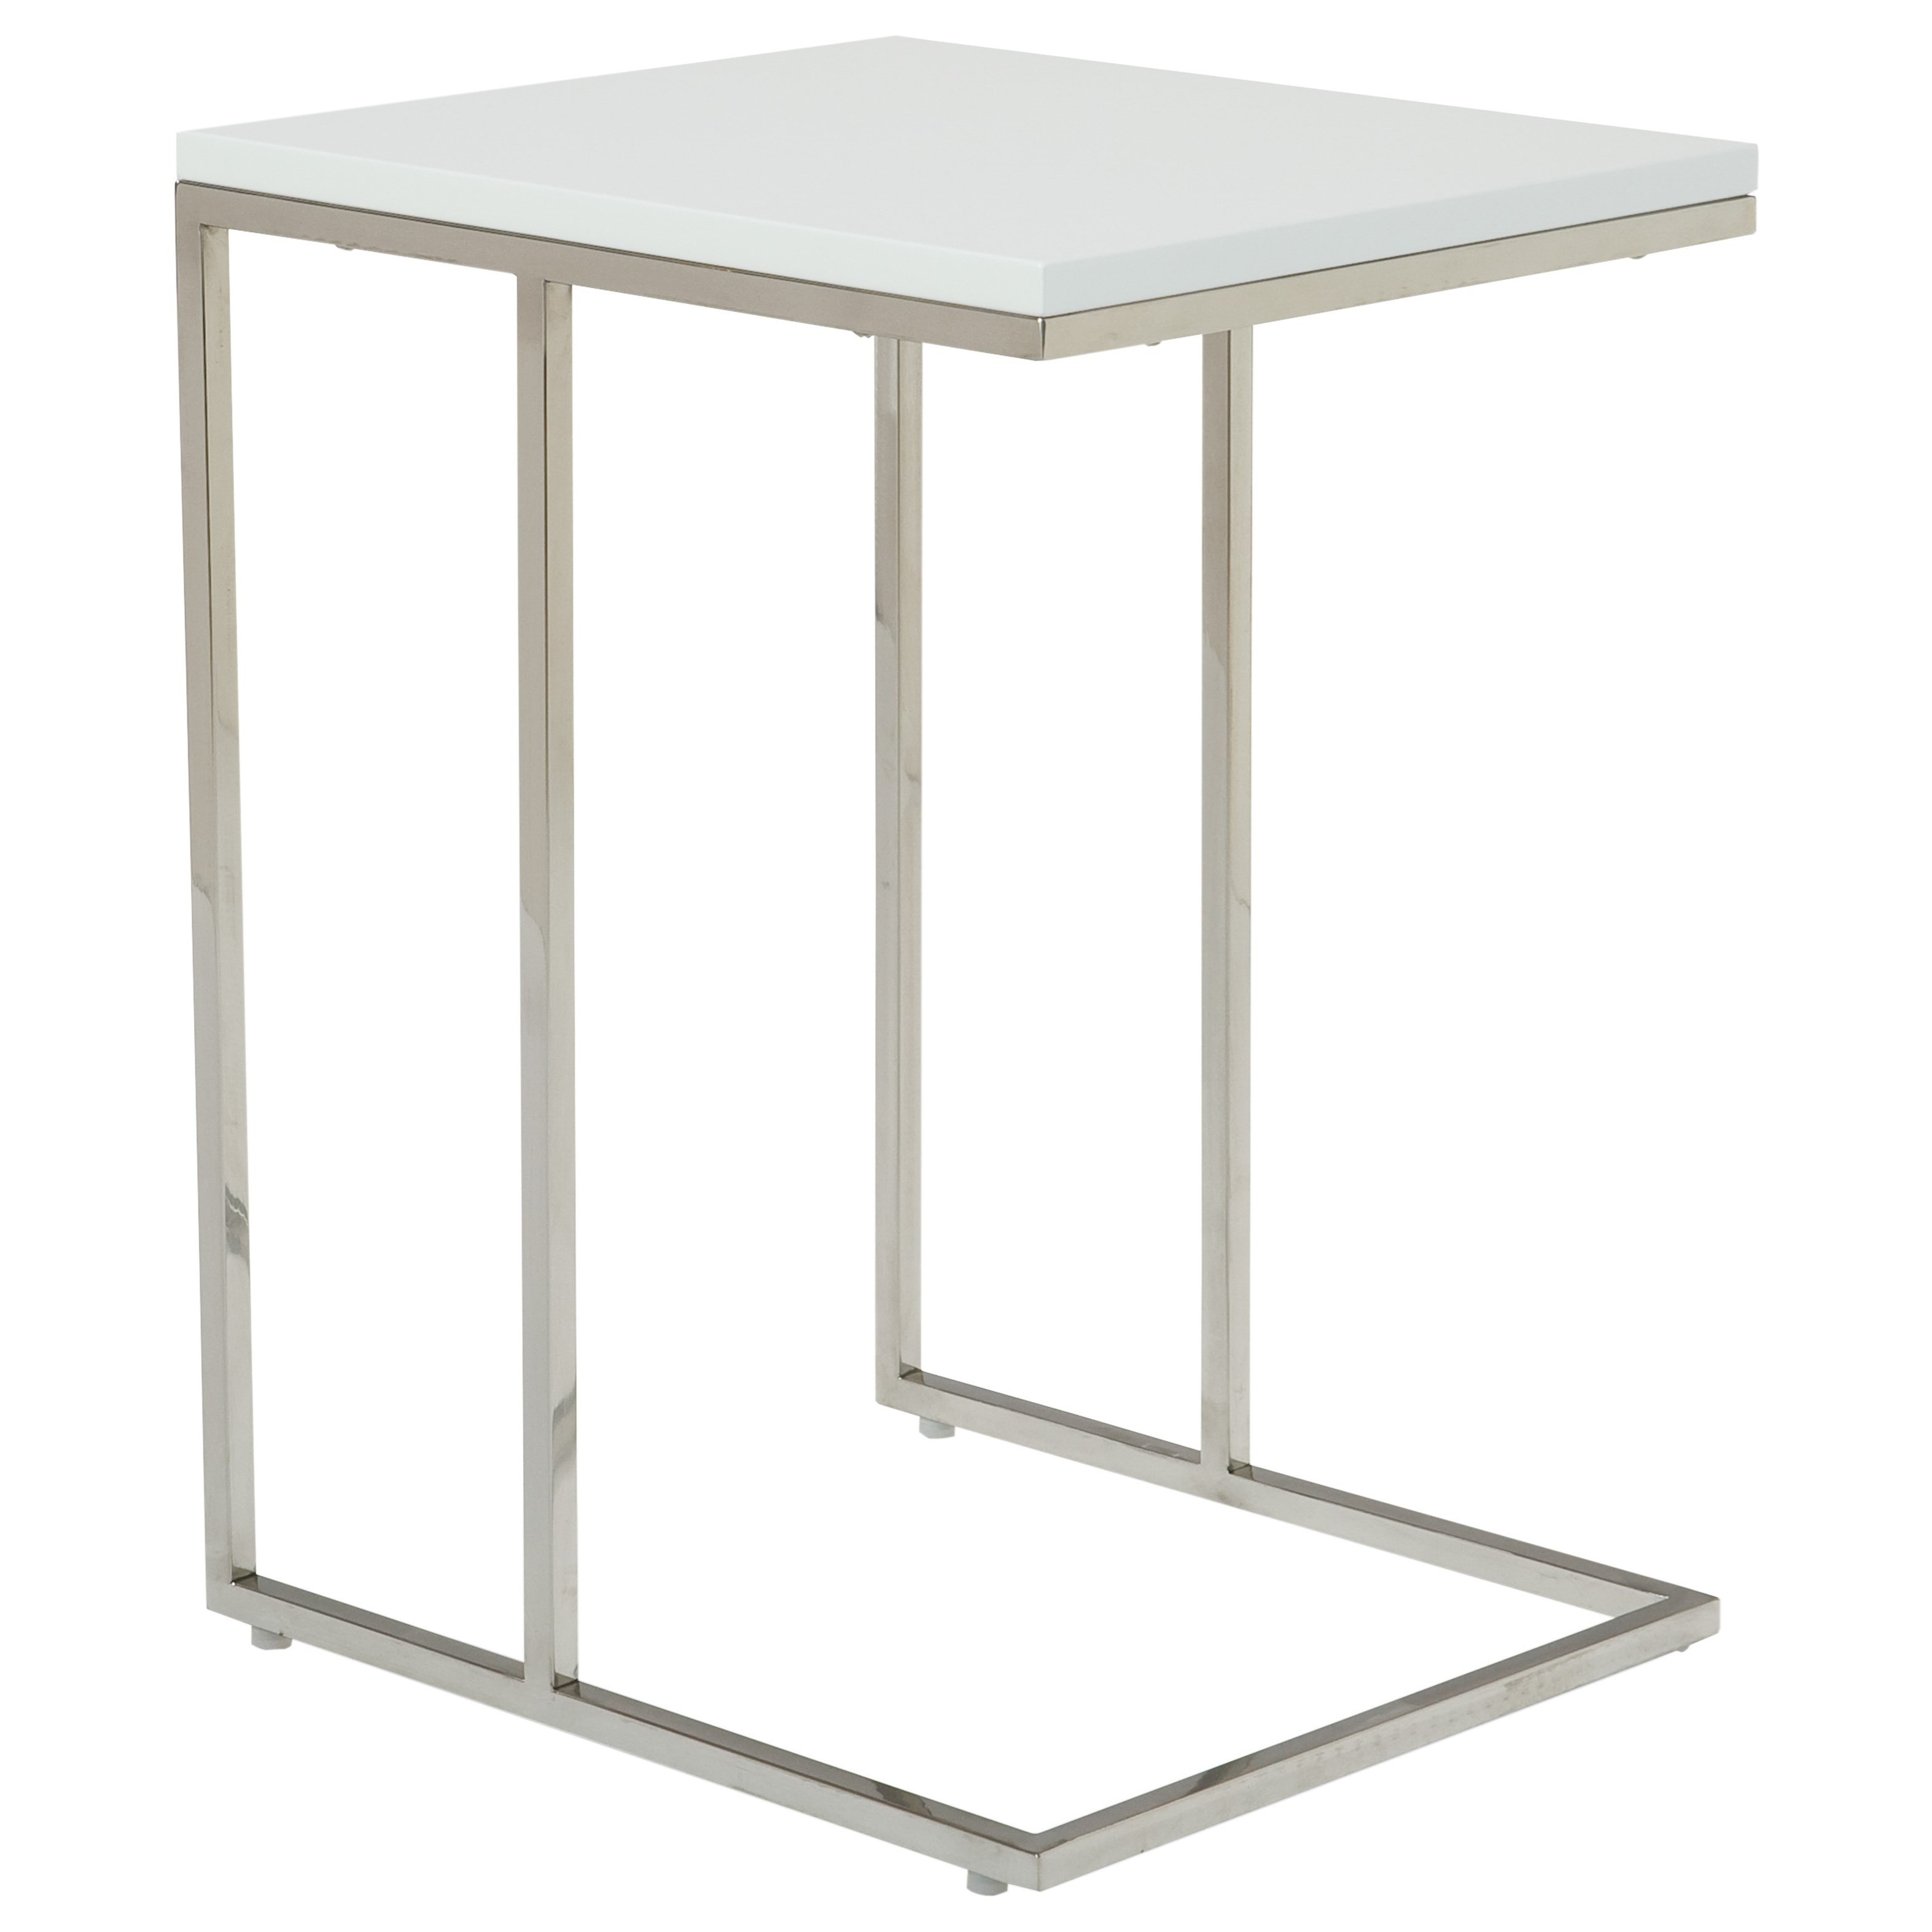 Posta Accent Table by Moe's Home Collection at Stoney Creek Furniture